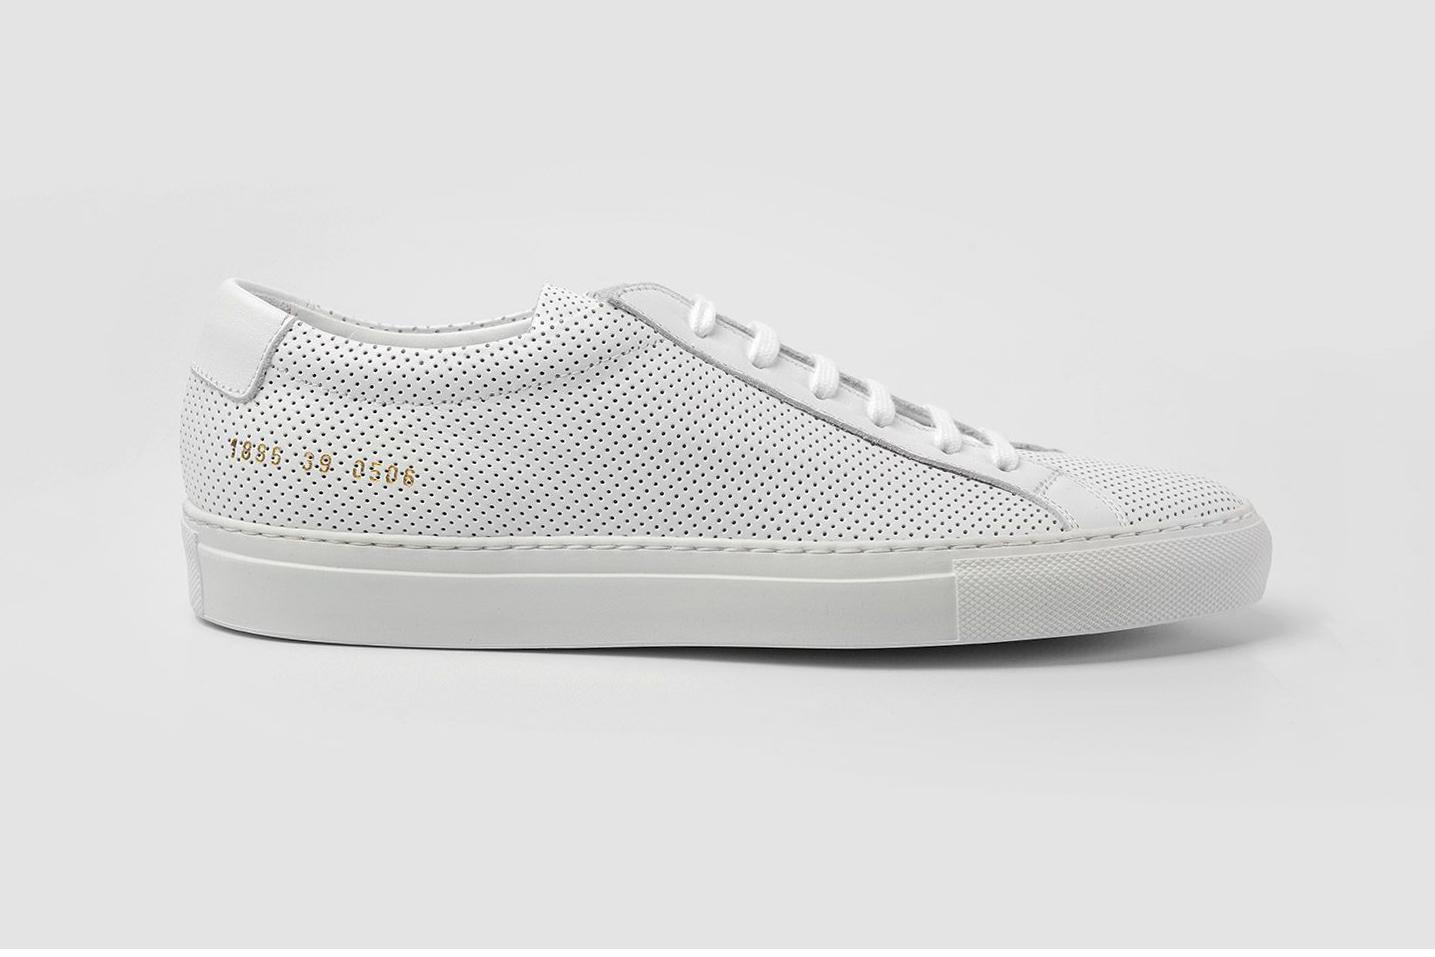 Common Projects Achilles Low Perforated White Sneaker | HYPEBEAST